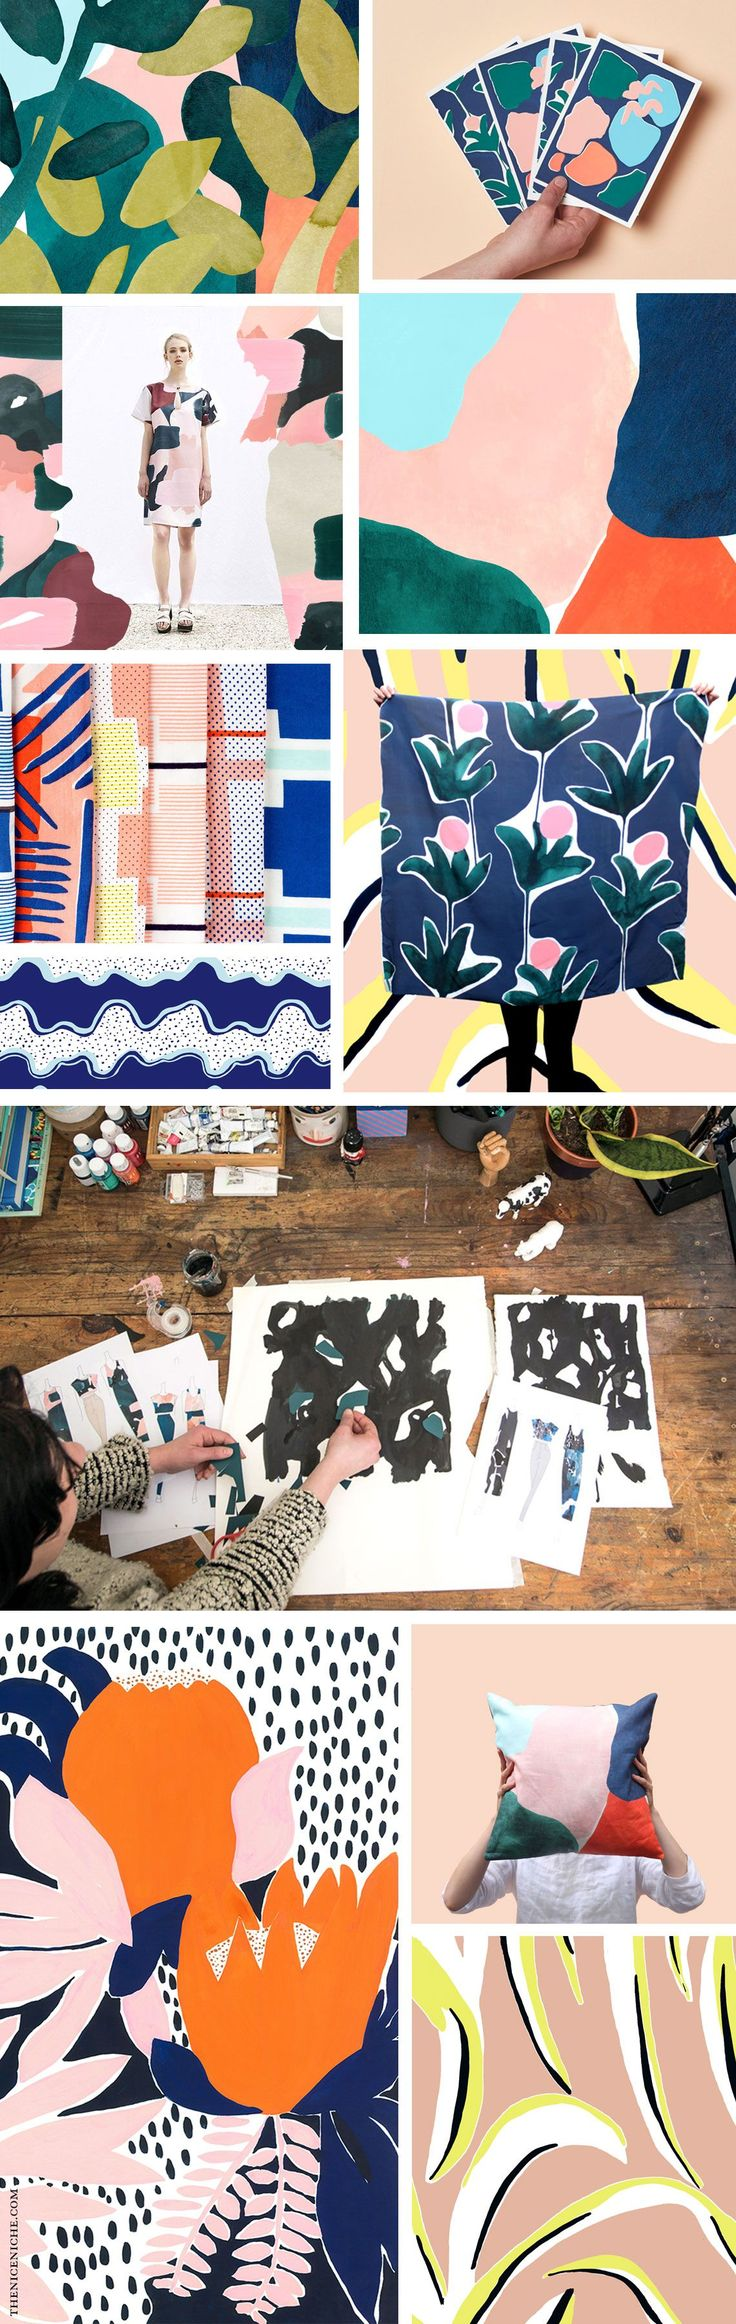 Interview with Cassie Byrnes, Textile + Surface Designer about her creative process